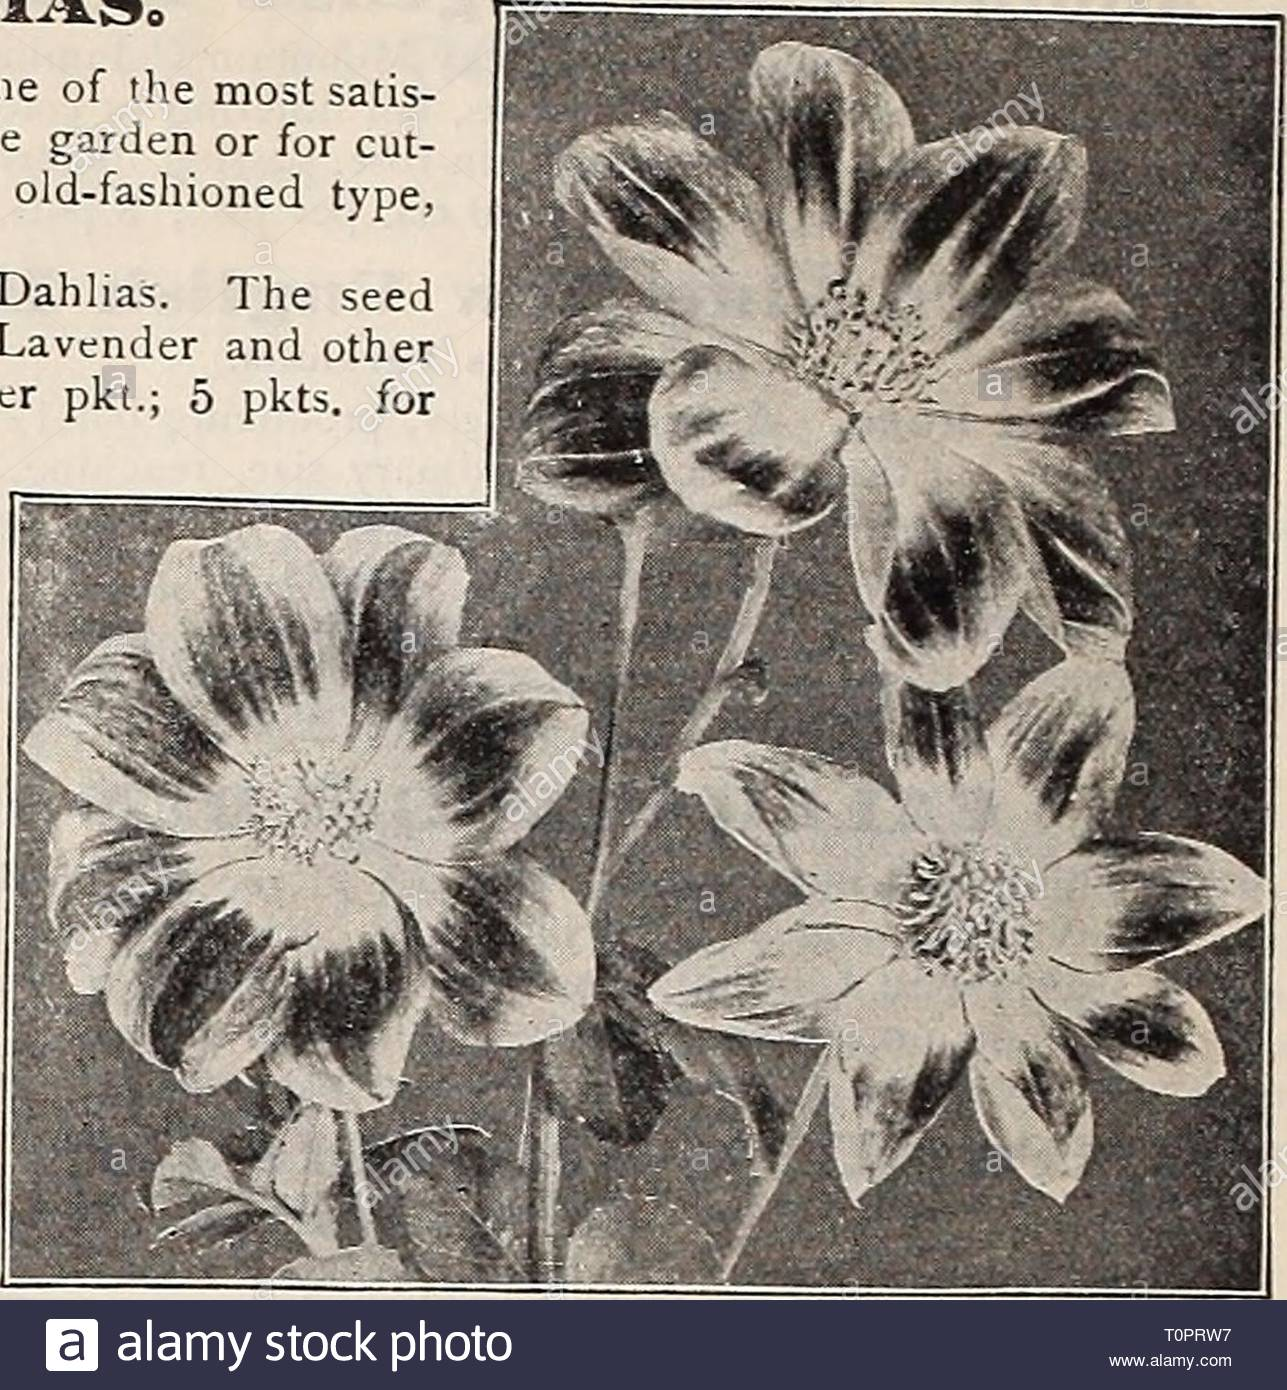 dreers garden book 1906 dreers garden book 1906 dreersgardenbook1906henr year 1906 12 1lrradre r 4hl adelphiamwfiowfbffn knyfitif ittn grand new singie dahiias0 single dahlias are one of the easiest things to grow from seed and one of the most satis faclory late summer and autumn flowers either for the decoration of the garden or for cut ting the three new varieties offered below are far in advance of the old fashioned type and should find a place in every garden 2187 new century this is the latest development in single dahlias the seed has lieen sived from the magnifi T0PRW7